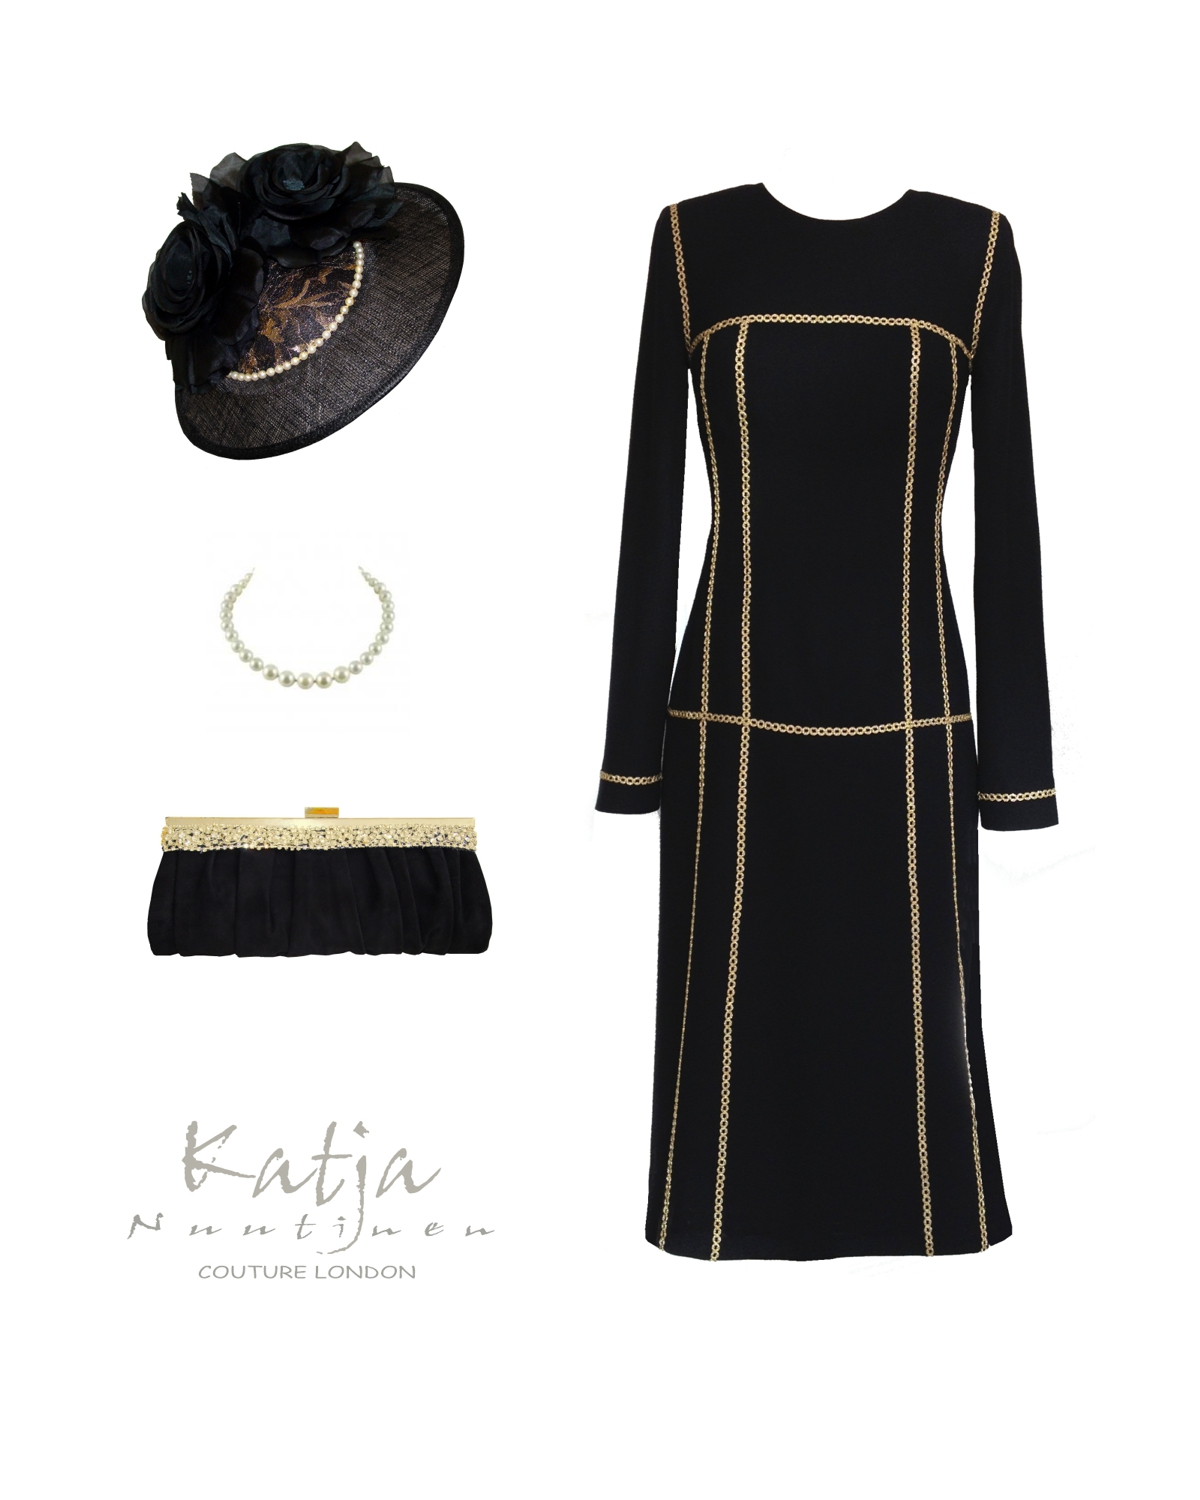 Couture outfit - Black wool dress with gold trim, cocktail hat and suede clutch bag